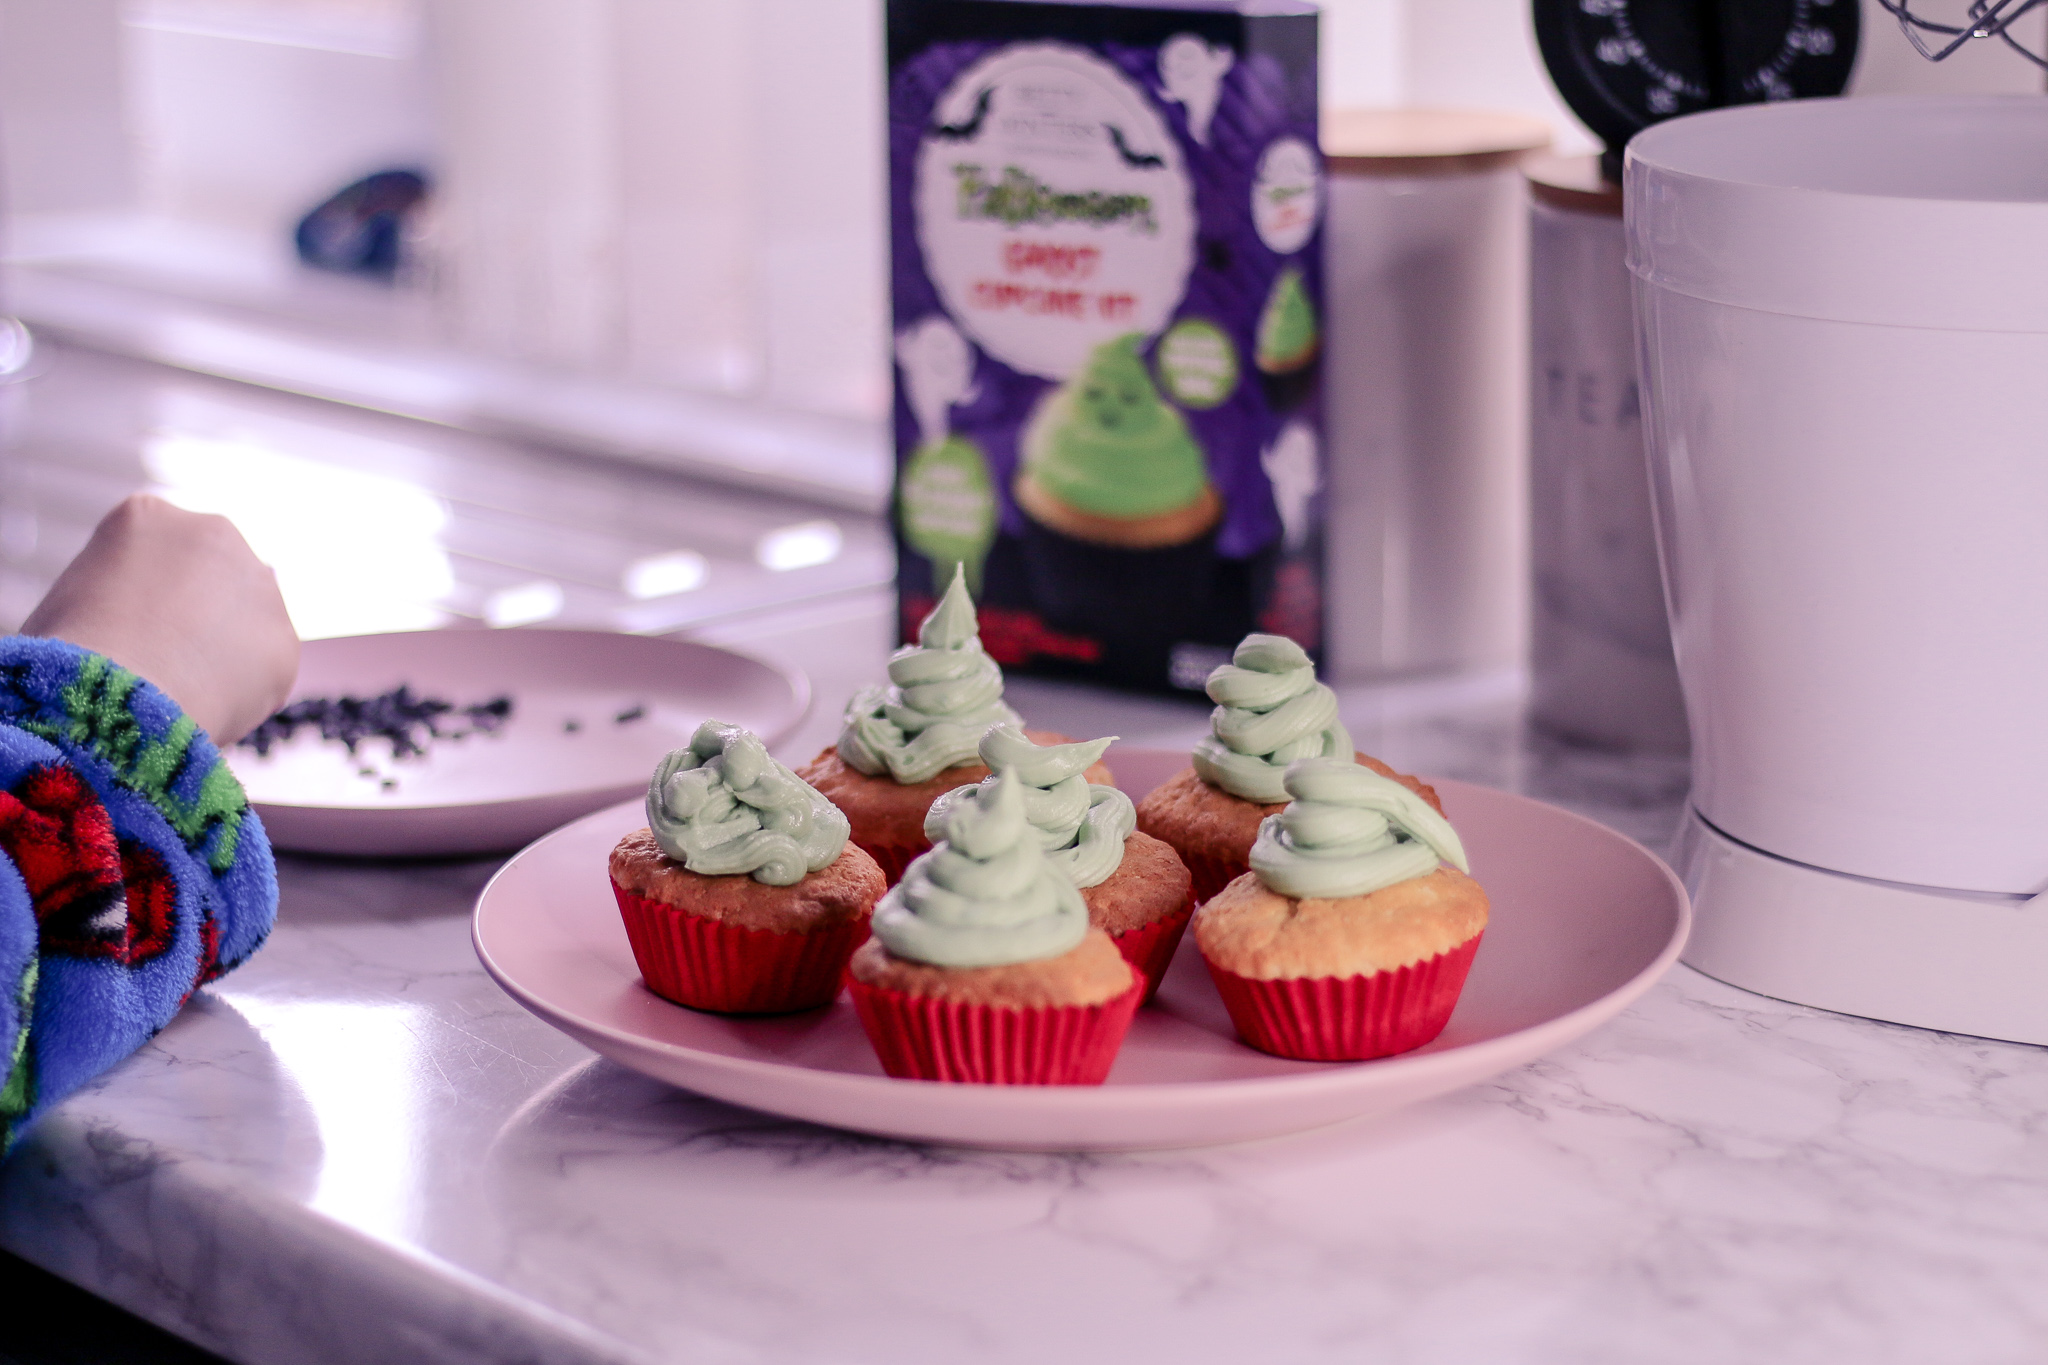 Close up photo of 6 cupcakes with green icing on a pink plate on top of a white marble kitchen worktop